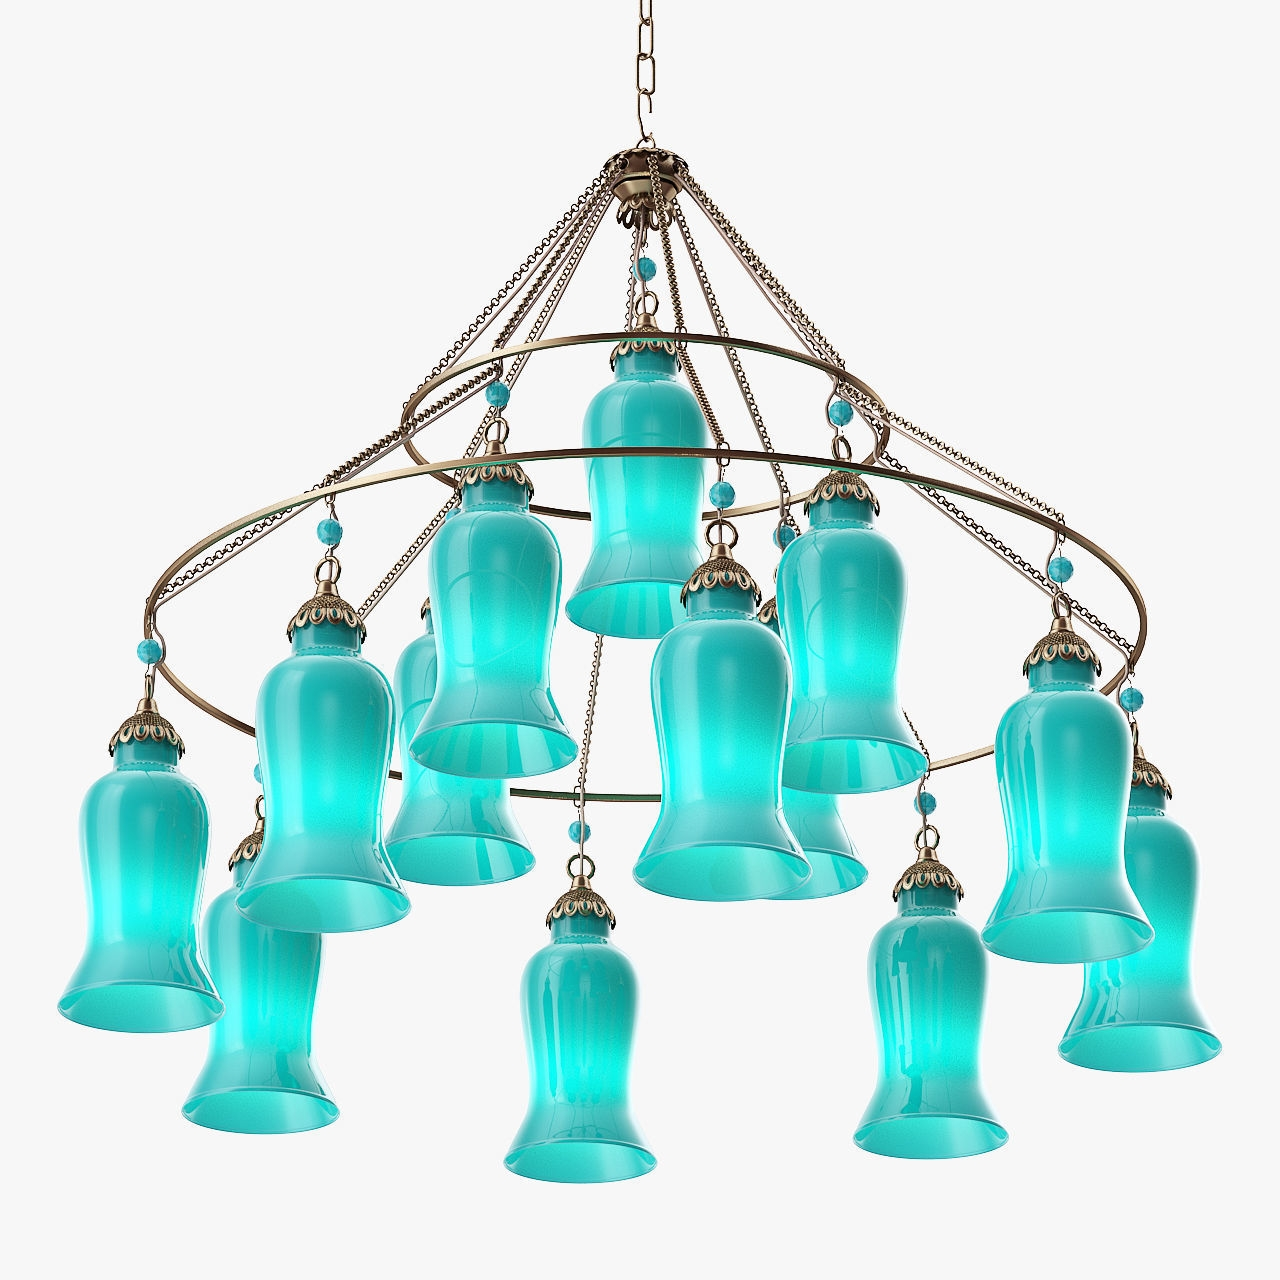 Canopy Designs Sara Glass Chandelier 3d Model Max Obj 3ds Fbx Mtl Intended For Turquoise Blue Glass Chandeliers (Image 5 of 25)